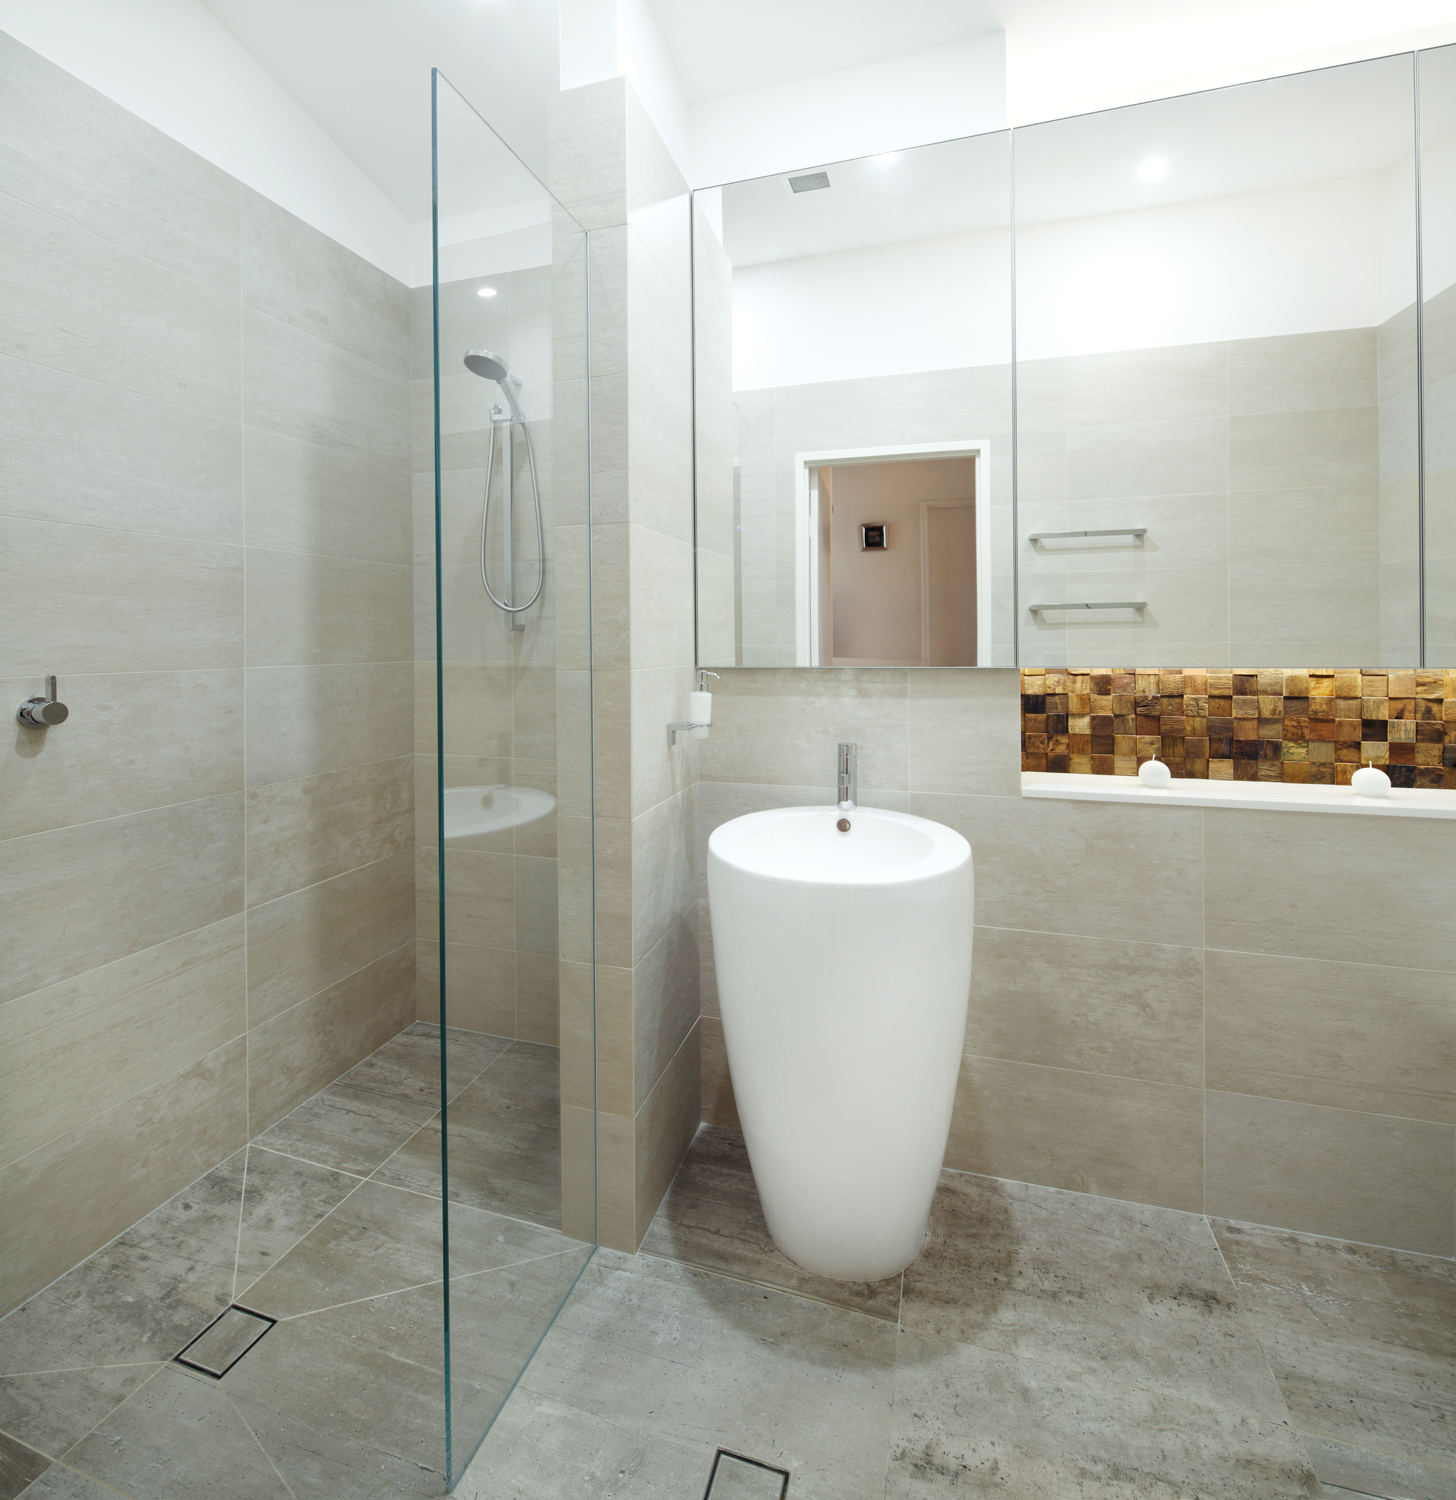 Bathroom design: Recycle with style